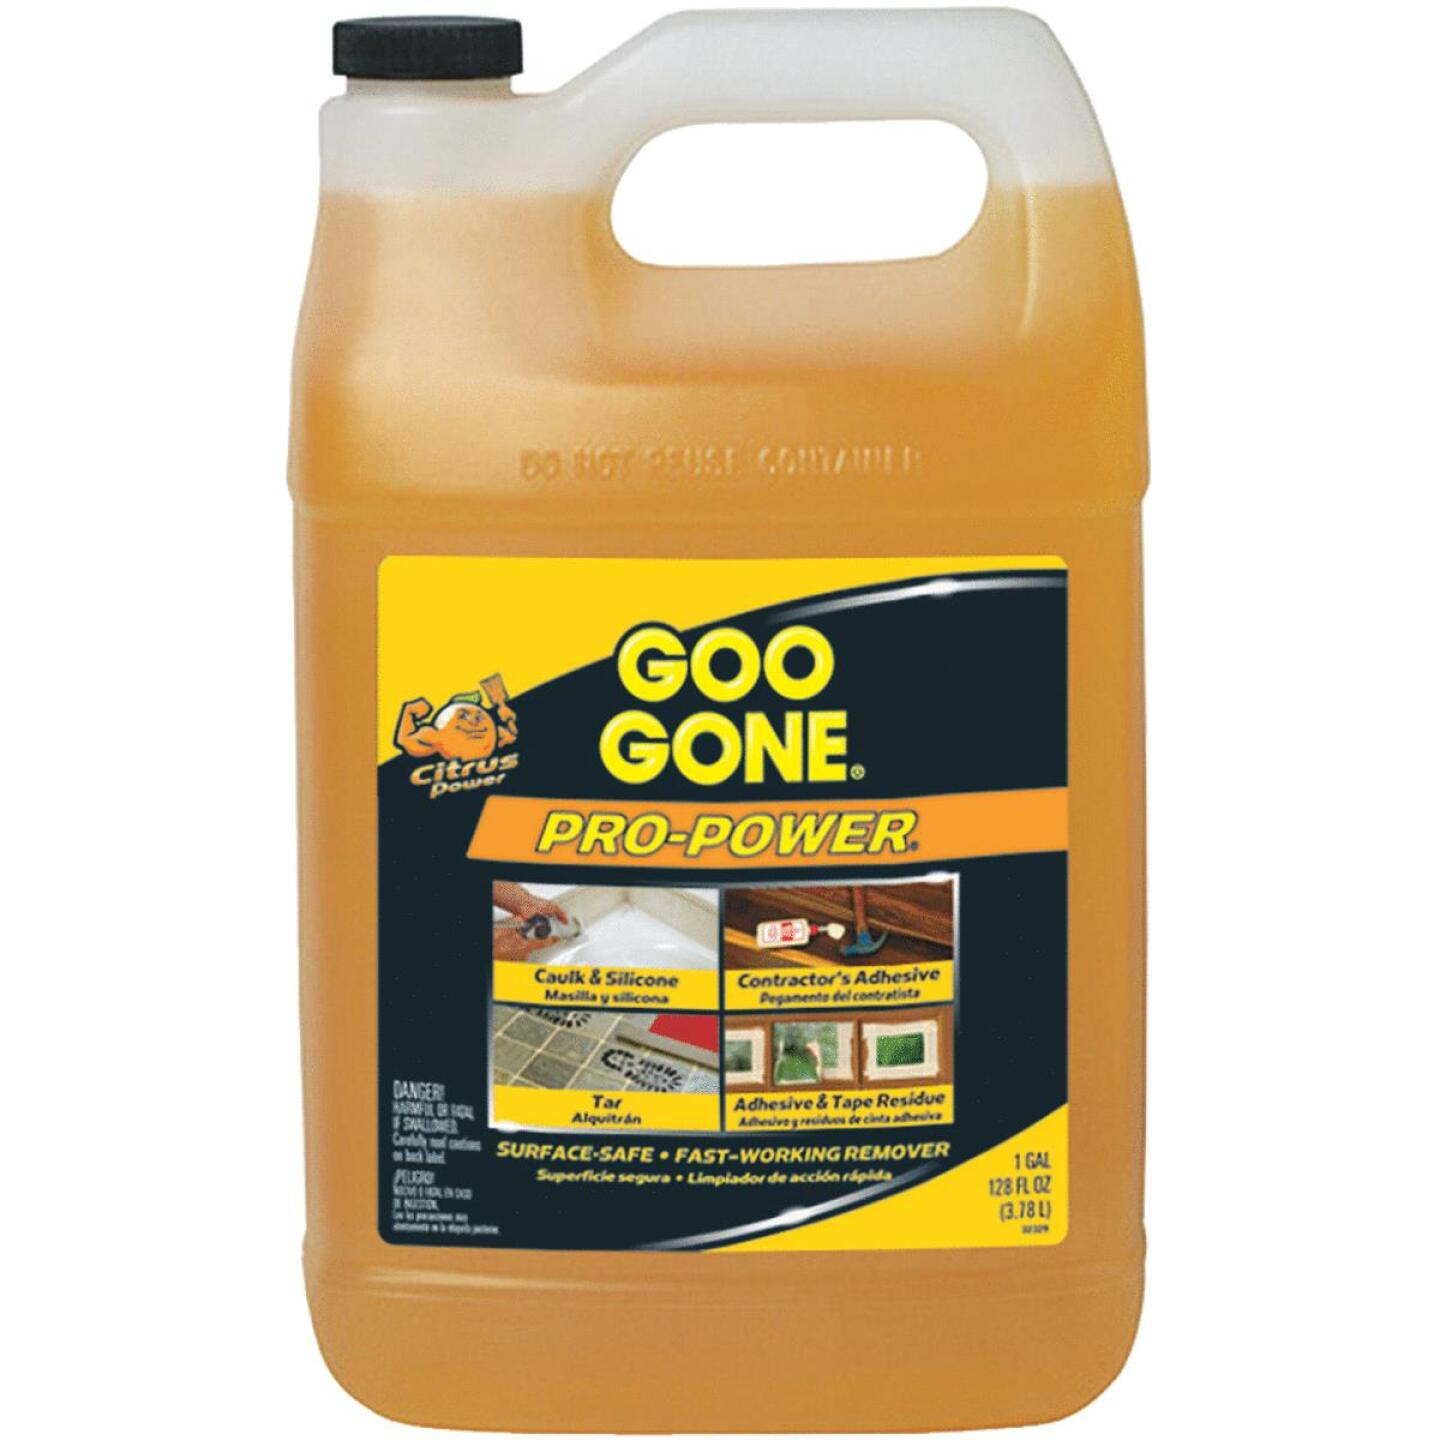 Goo Gone 1 Gal. Pro-Power Adhesive Remover Image 18